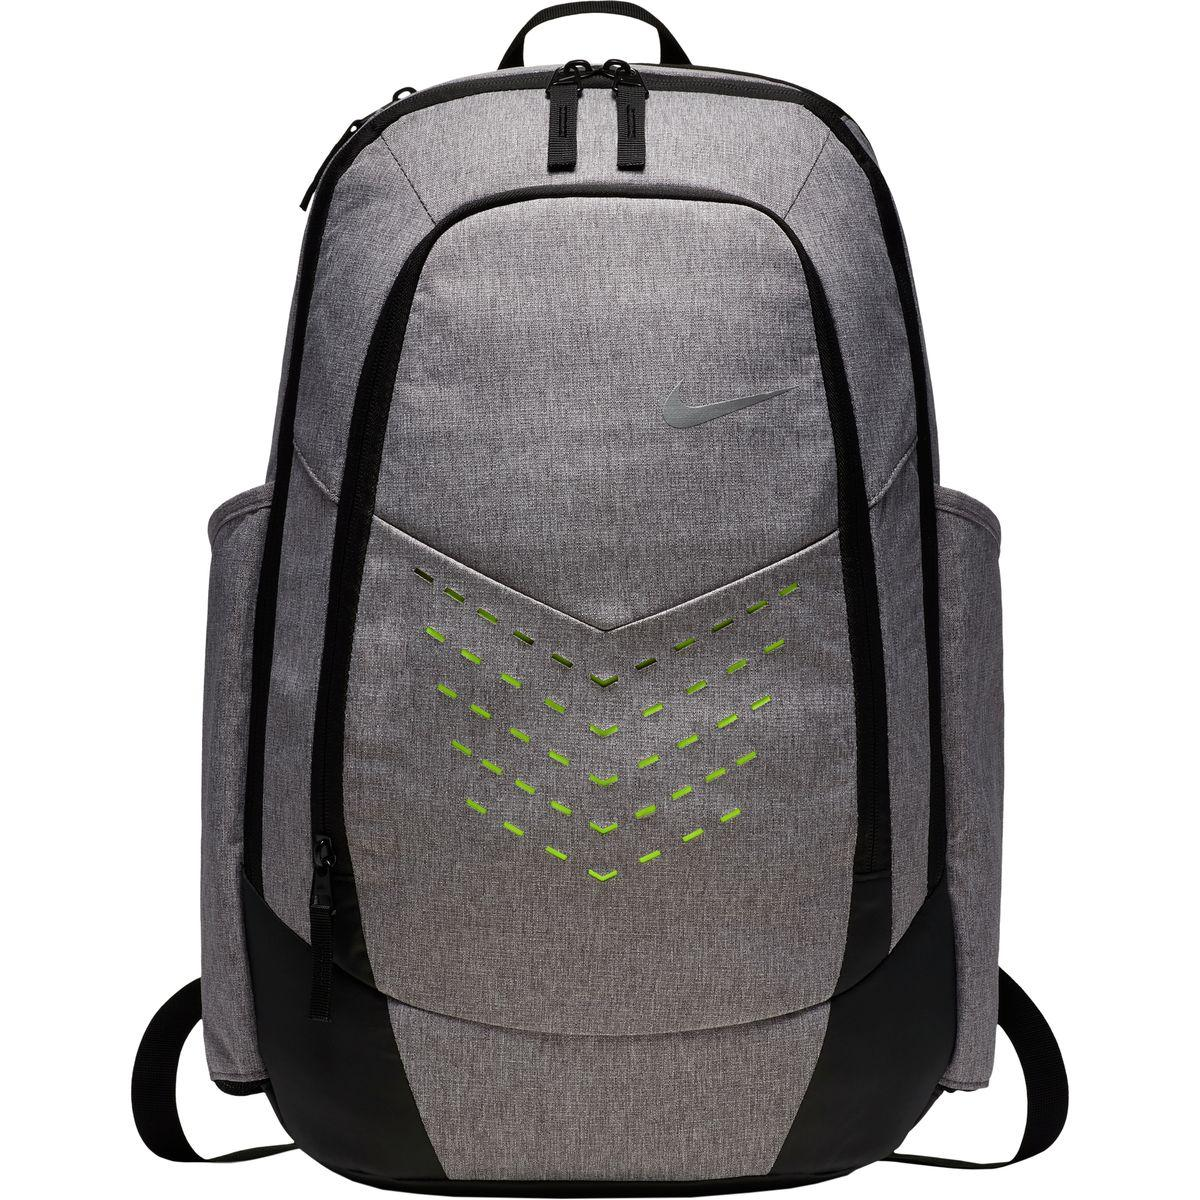 7ef024e3c4a5 Lyst - Nike Vapor Energy Training Backpack for Men